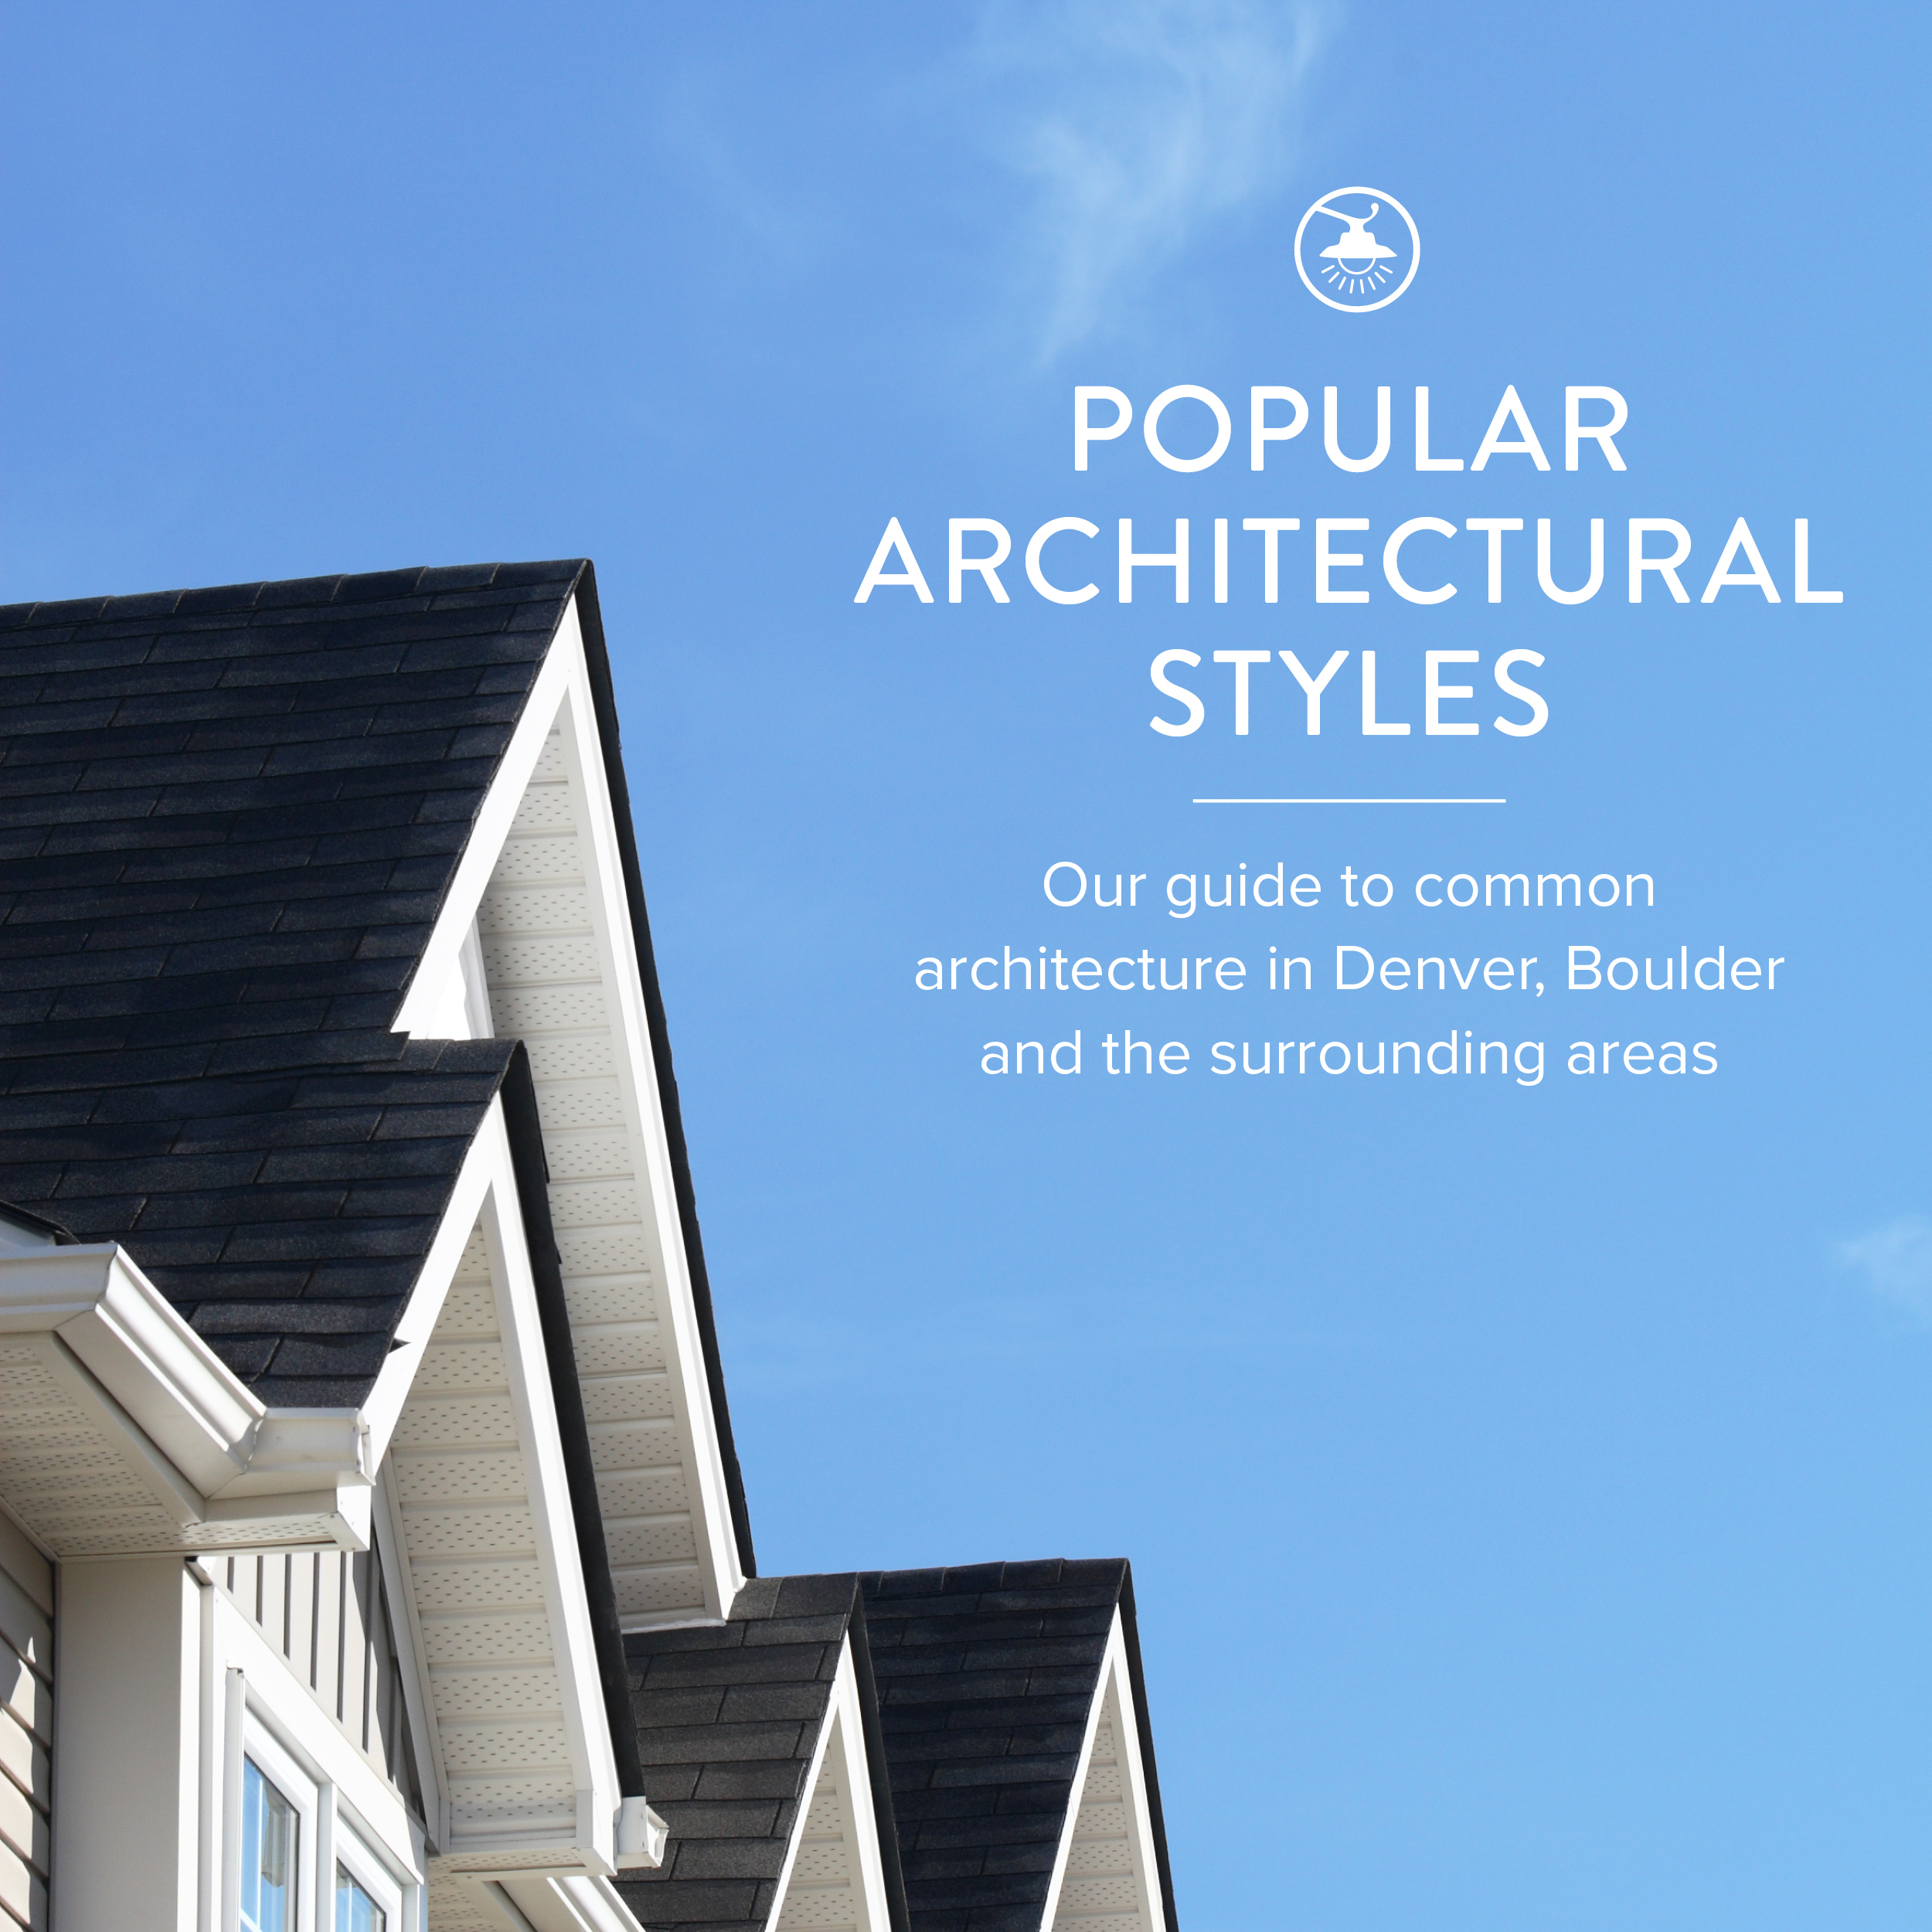 architectural styles in denver and boulder